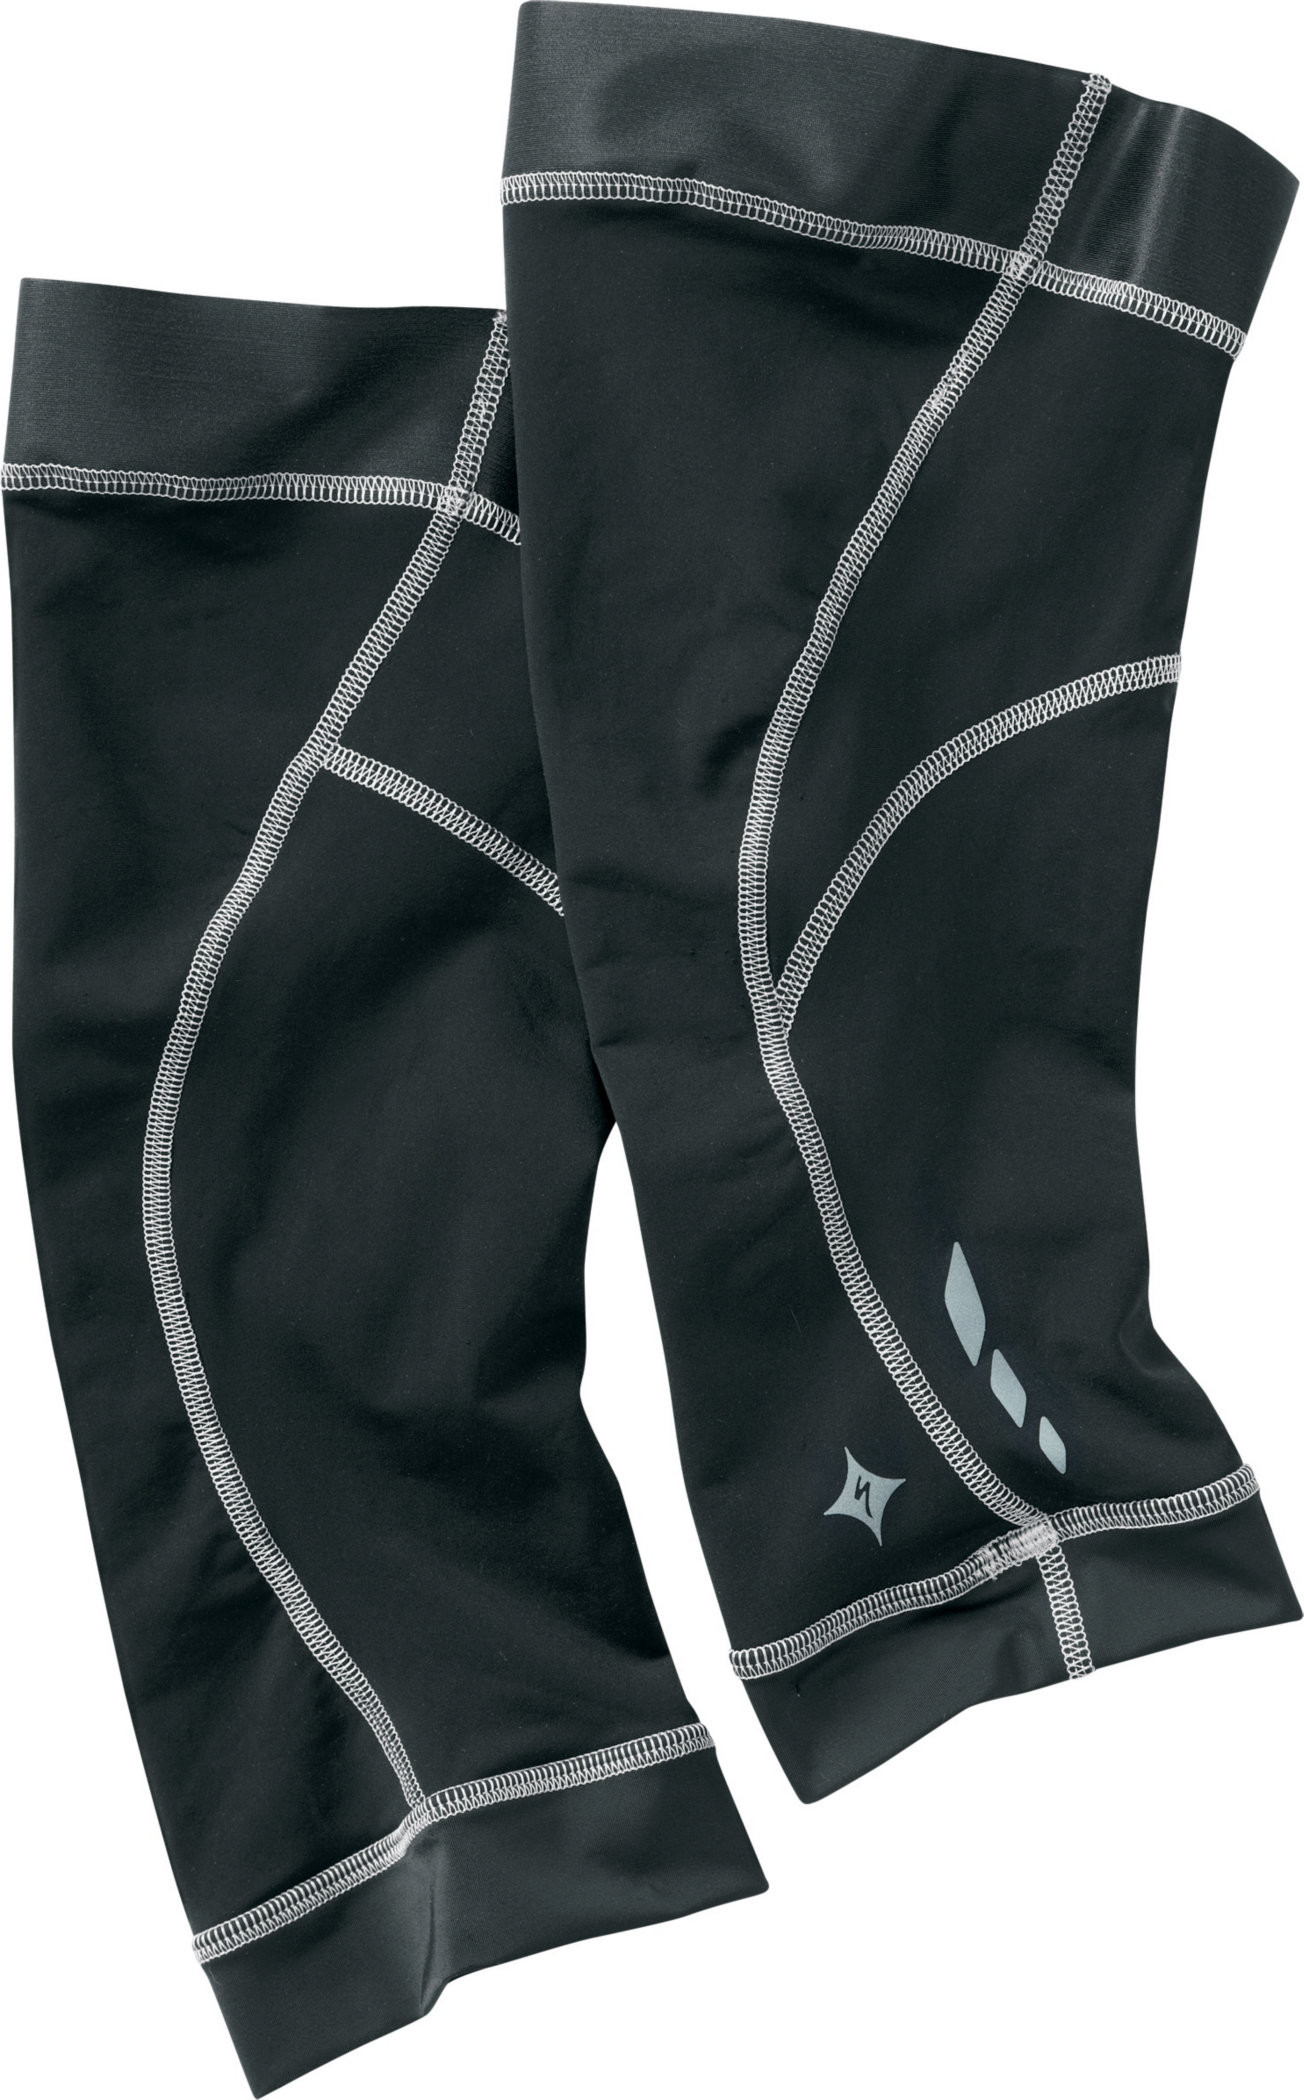 SPECIALIZED THERMINAL 2.0 KNEE WARMER WMN BLK L - Alpha Bikes